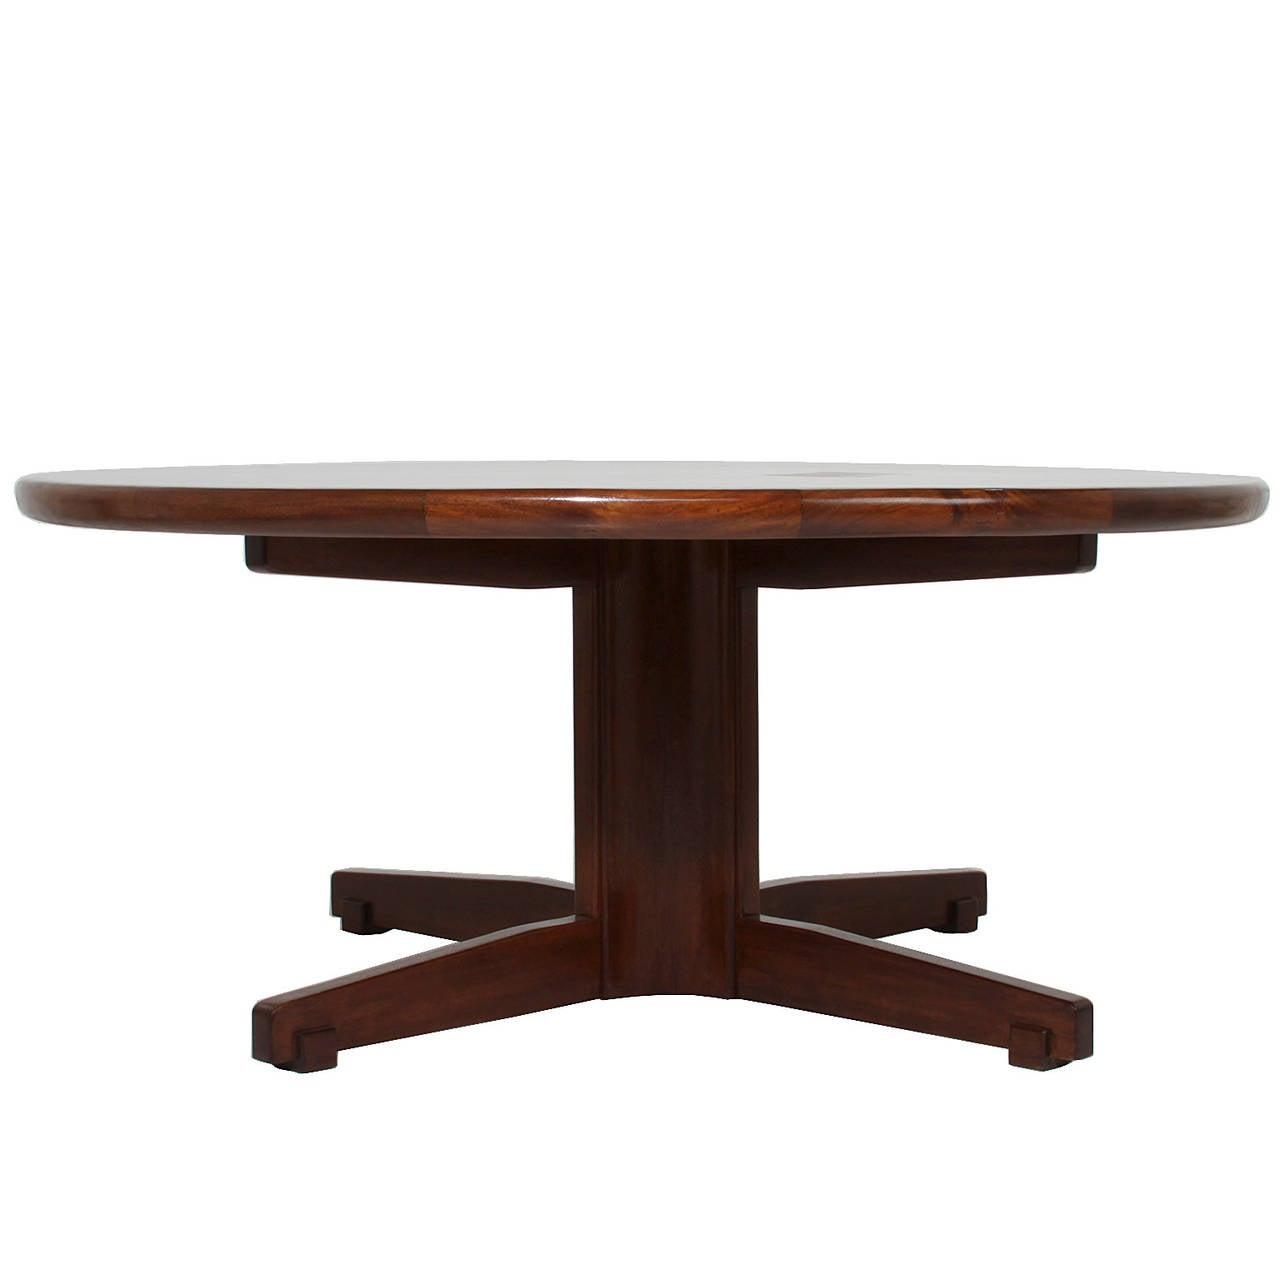 large round brazilian dining table in cetera wood attributed to celina